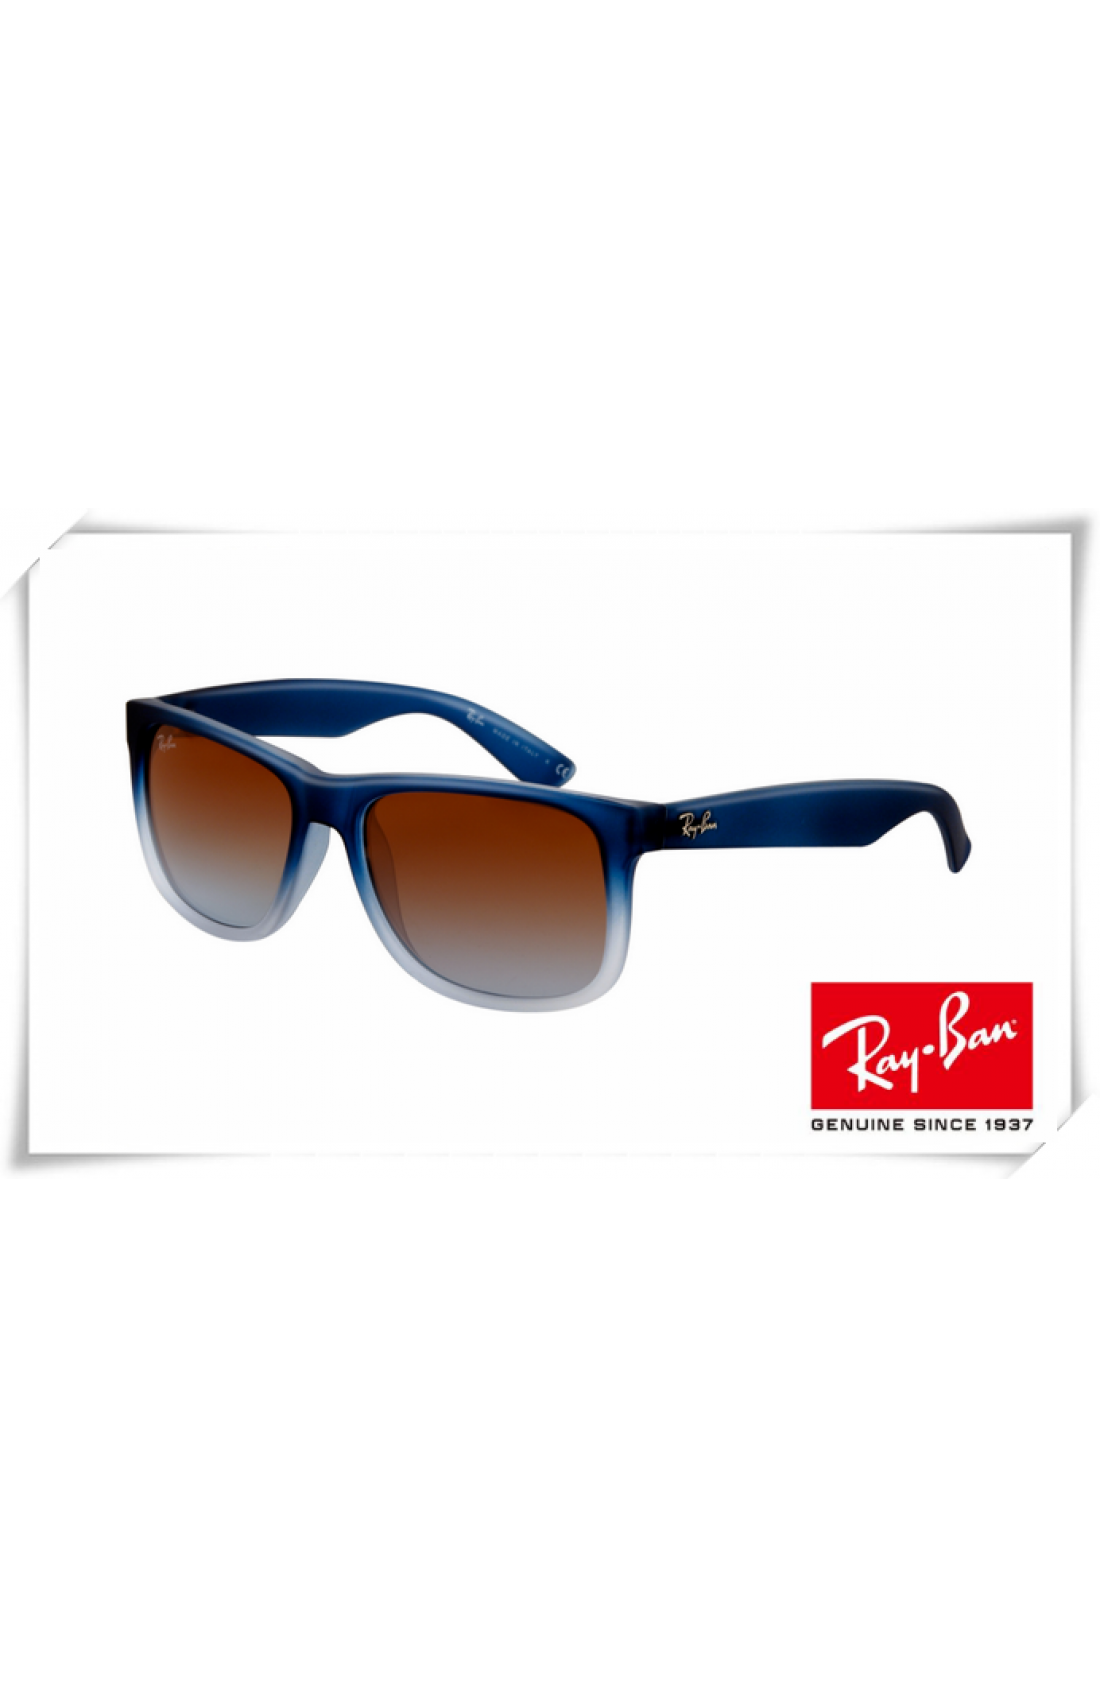 aead1df862 Replica Ray Ban RB4165 Justin Sunglasses Rubber Gradient Blue Frame ...